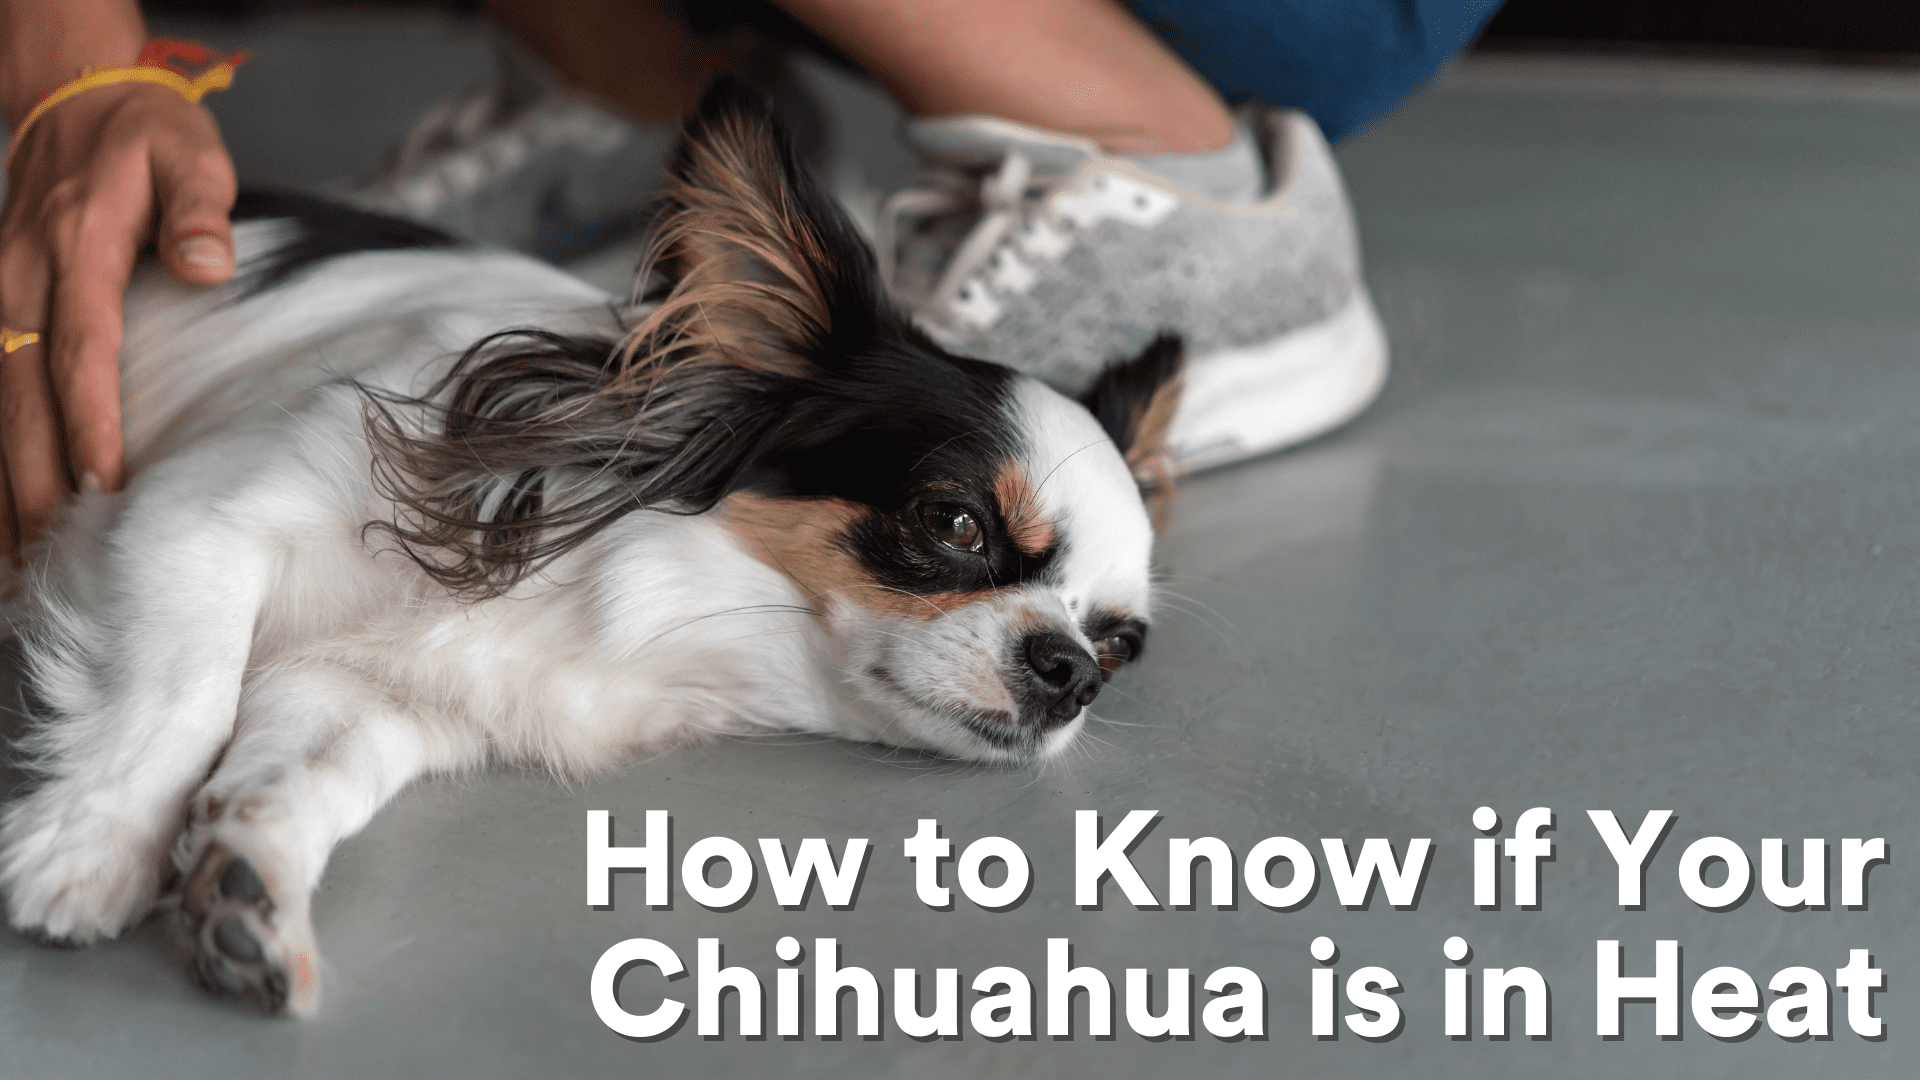 How to Know if Your Chihuahua is in Heat